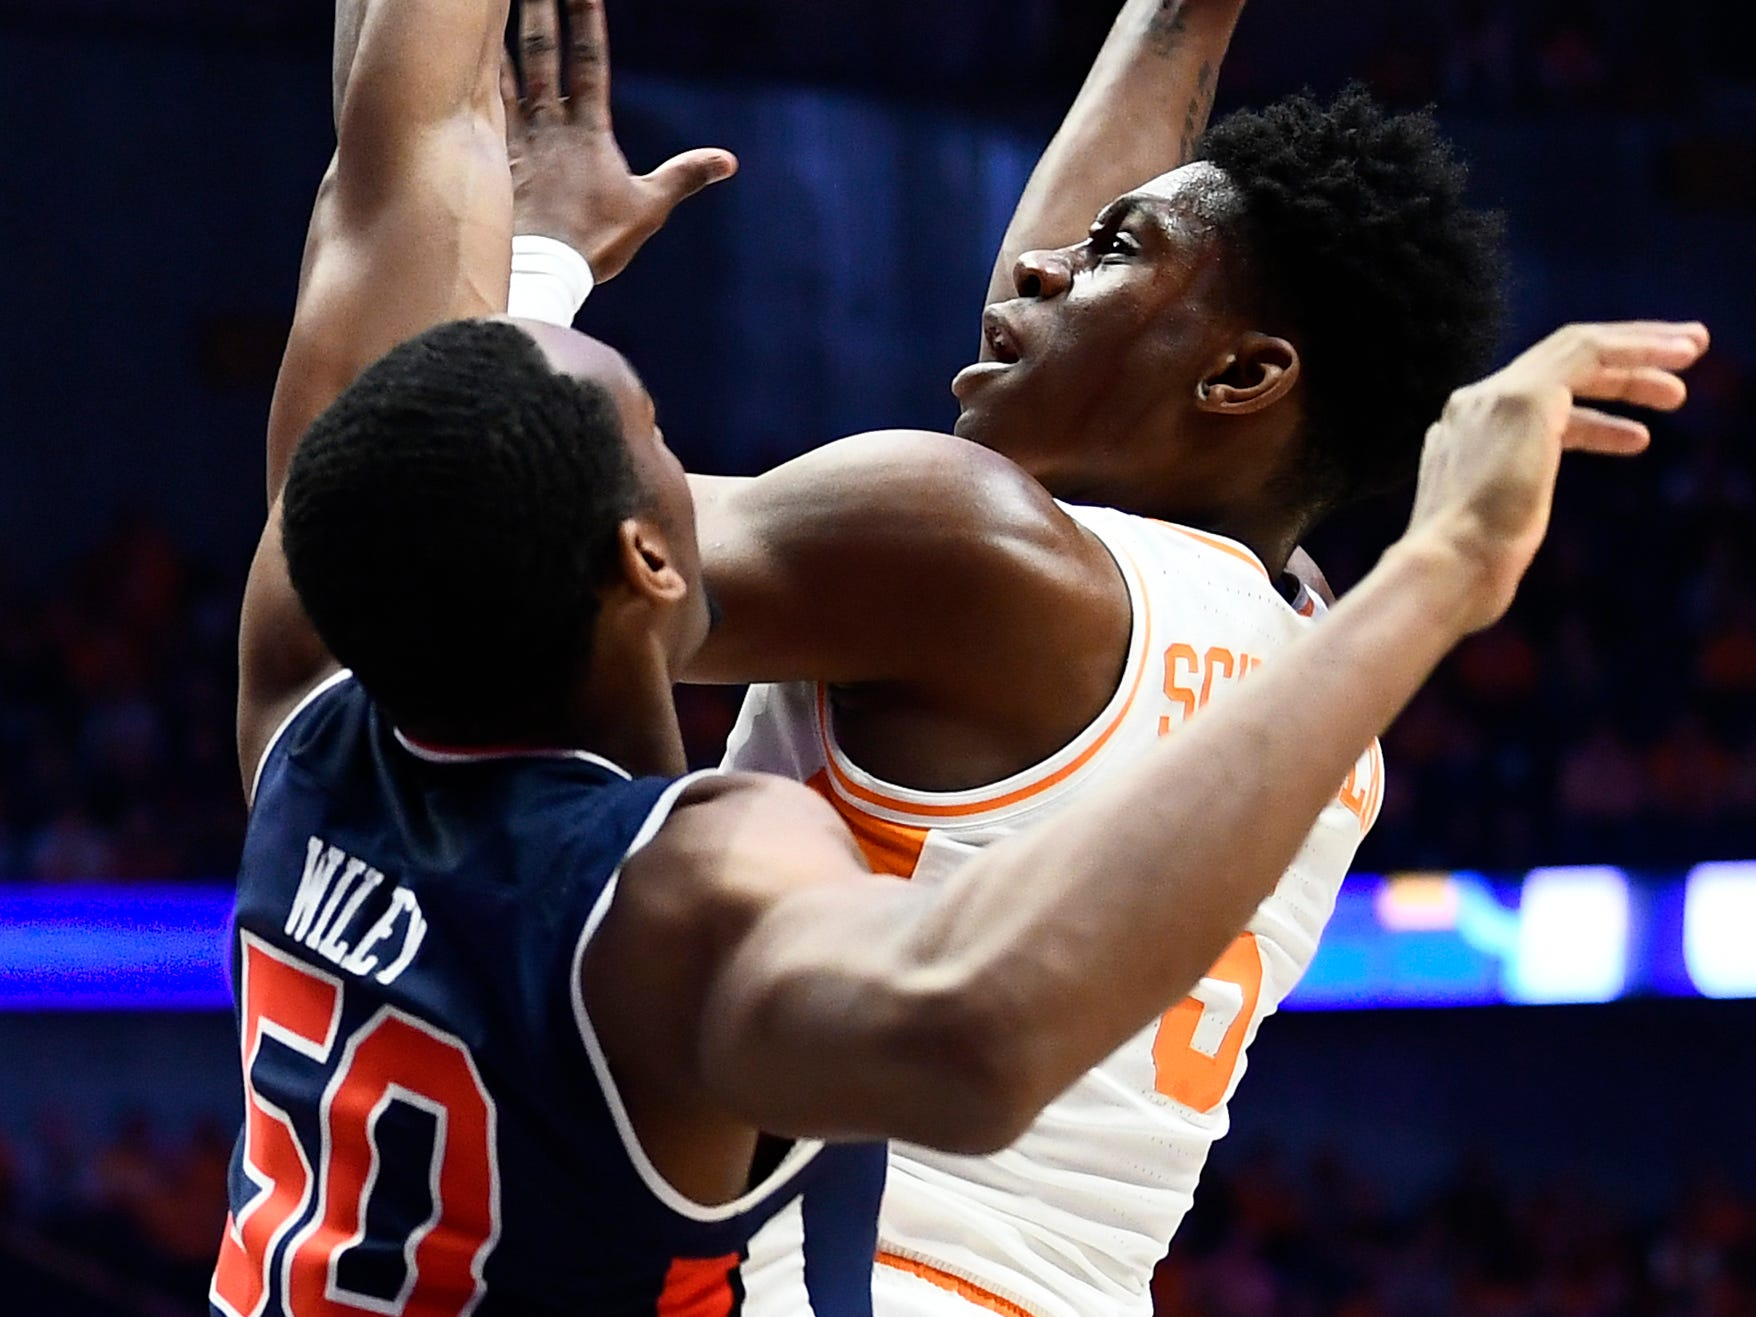 Tennessee guard Admiral Schofield (5) takes a shot while defended by Auburn center Austin Wiley (50) during the first half of the SEC Men's Basketball Tournament championship game at Bridgestone Arena in Nashville, Tenn., Sunday, March 17, 2019.